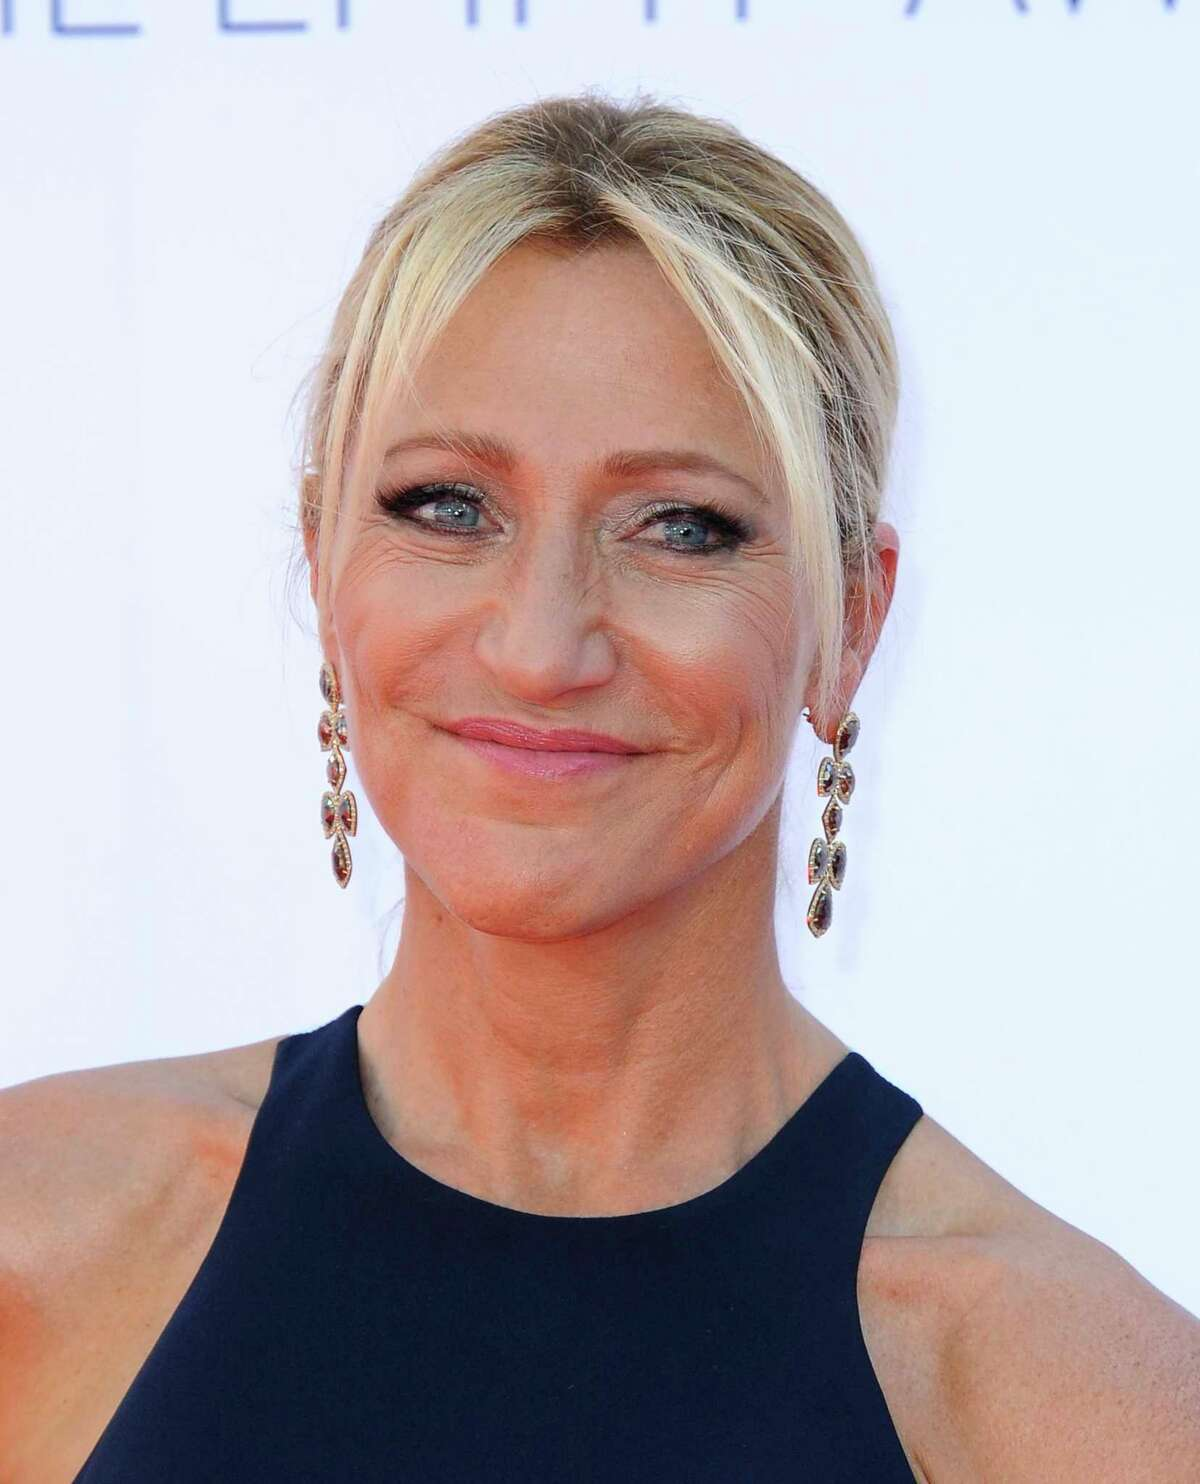 Actress Edie Falco arrives at the 64th Primetime Emmy Awards at the Nokia Theatre on Sunday, Sept. 23, 2012, in Los Angeles. (Photo by Jordan Strauss/Invision/AP)